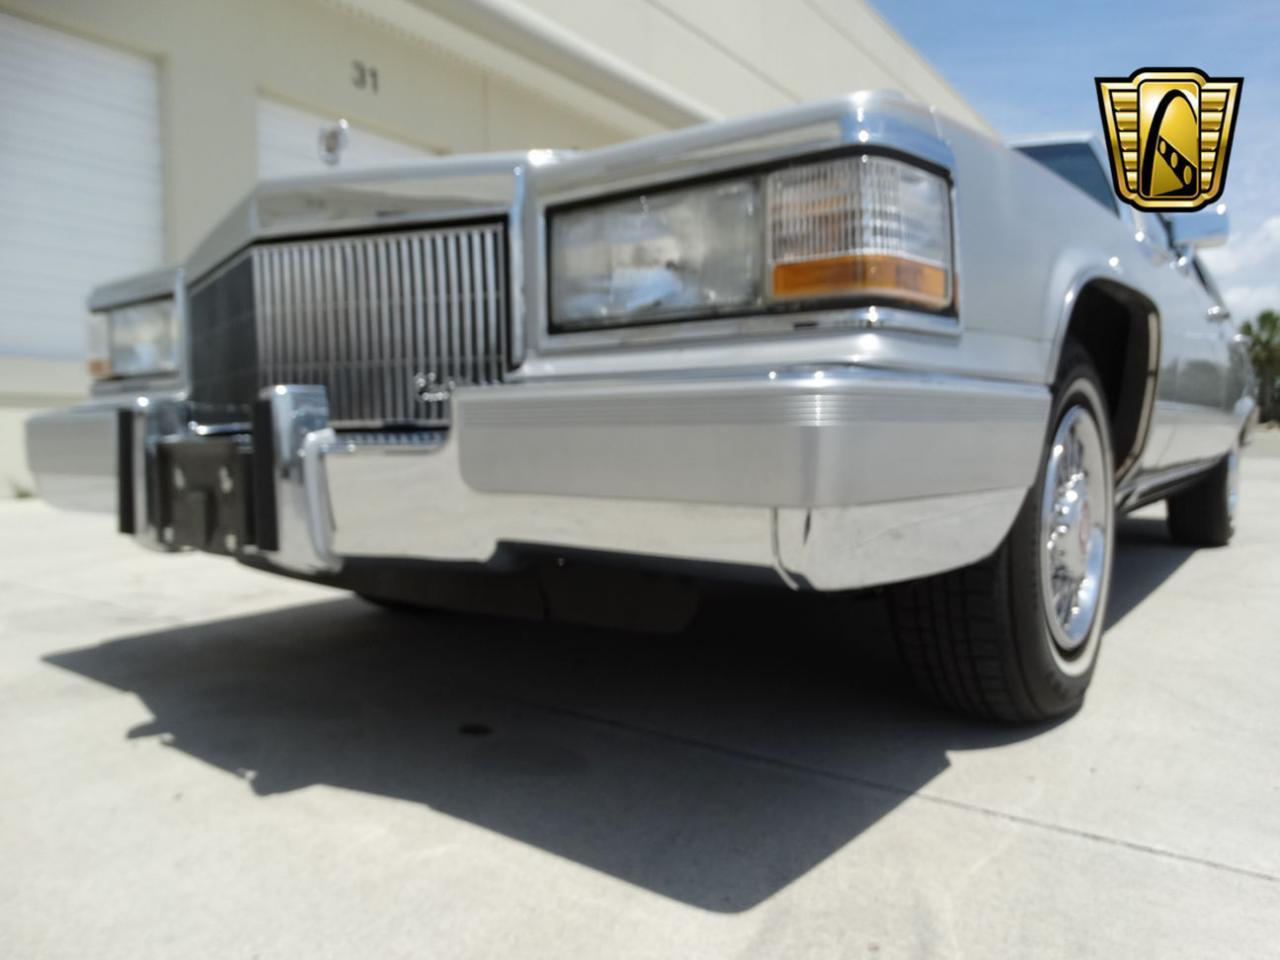 Large Picture of '90 Cadillac Brougham located in Coral Springs Florida - $22,595.00 Offered by Gateway Classic Cars - Fort Lauderdale - L2WV